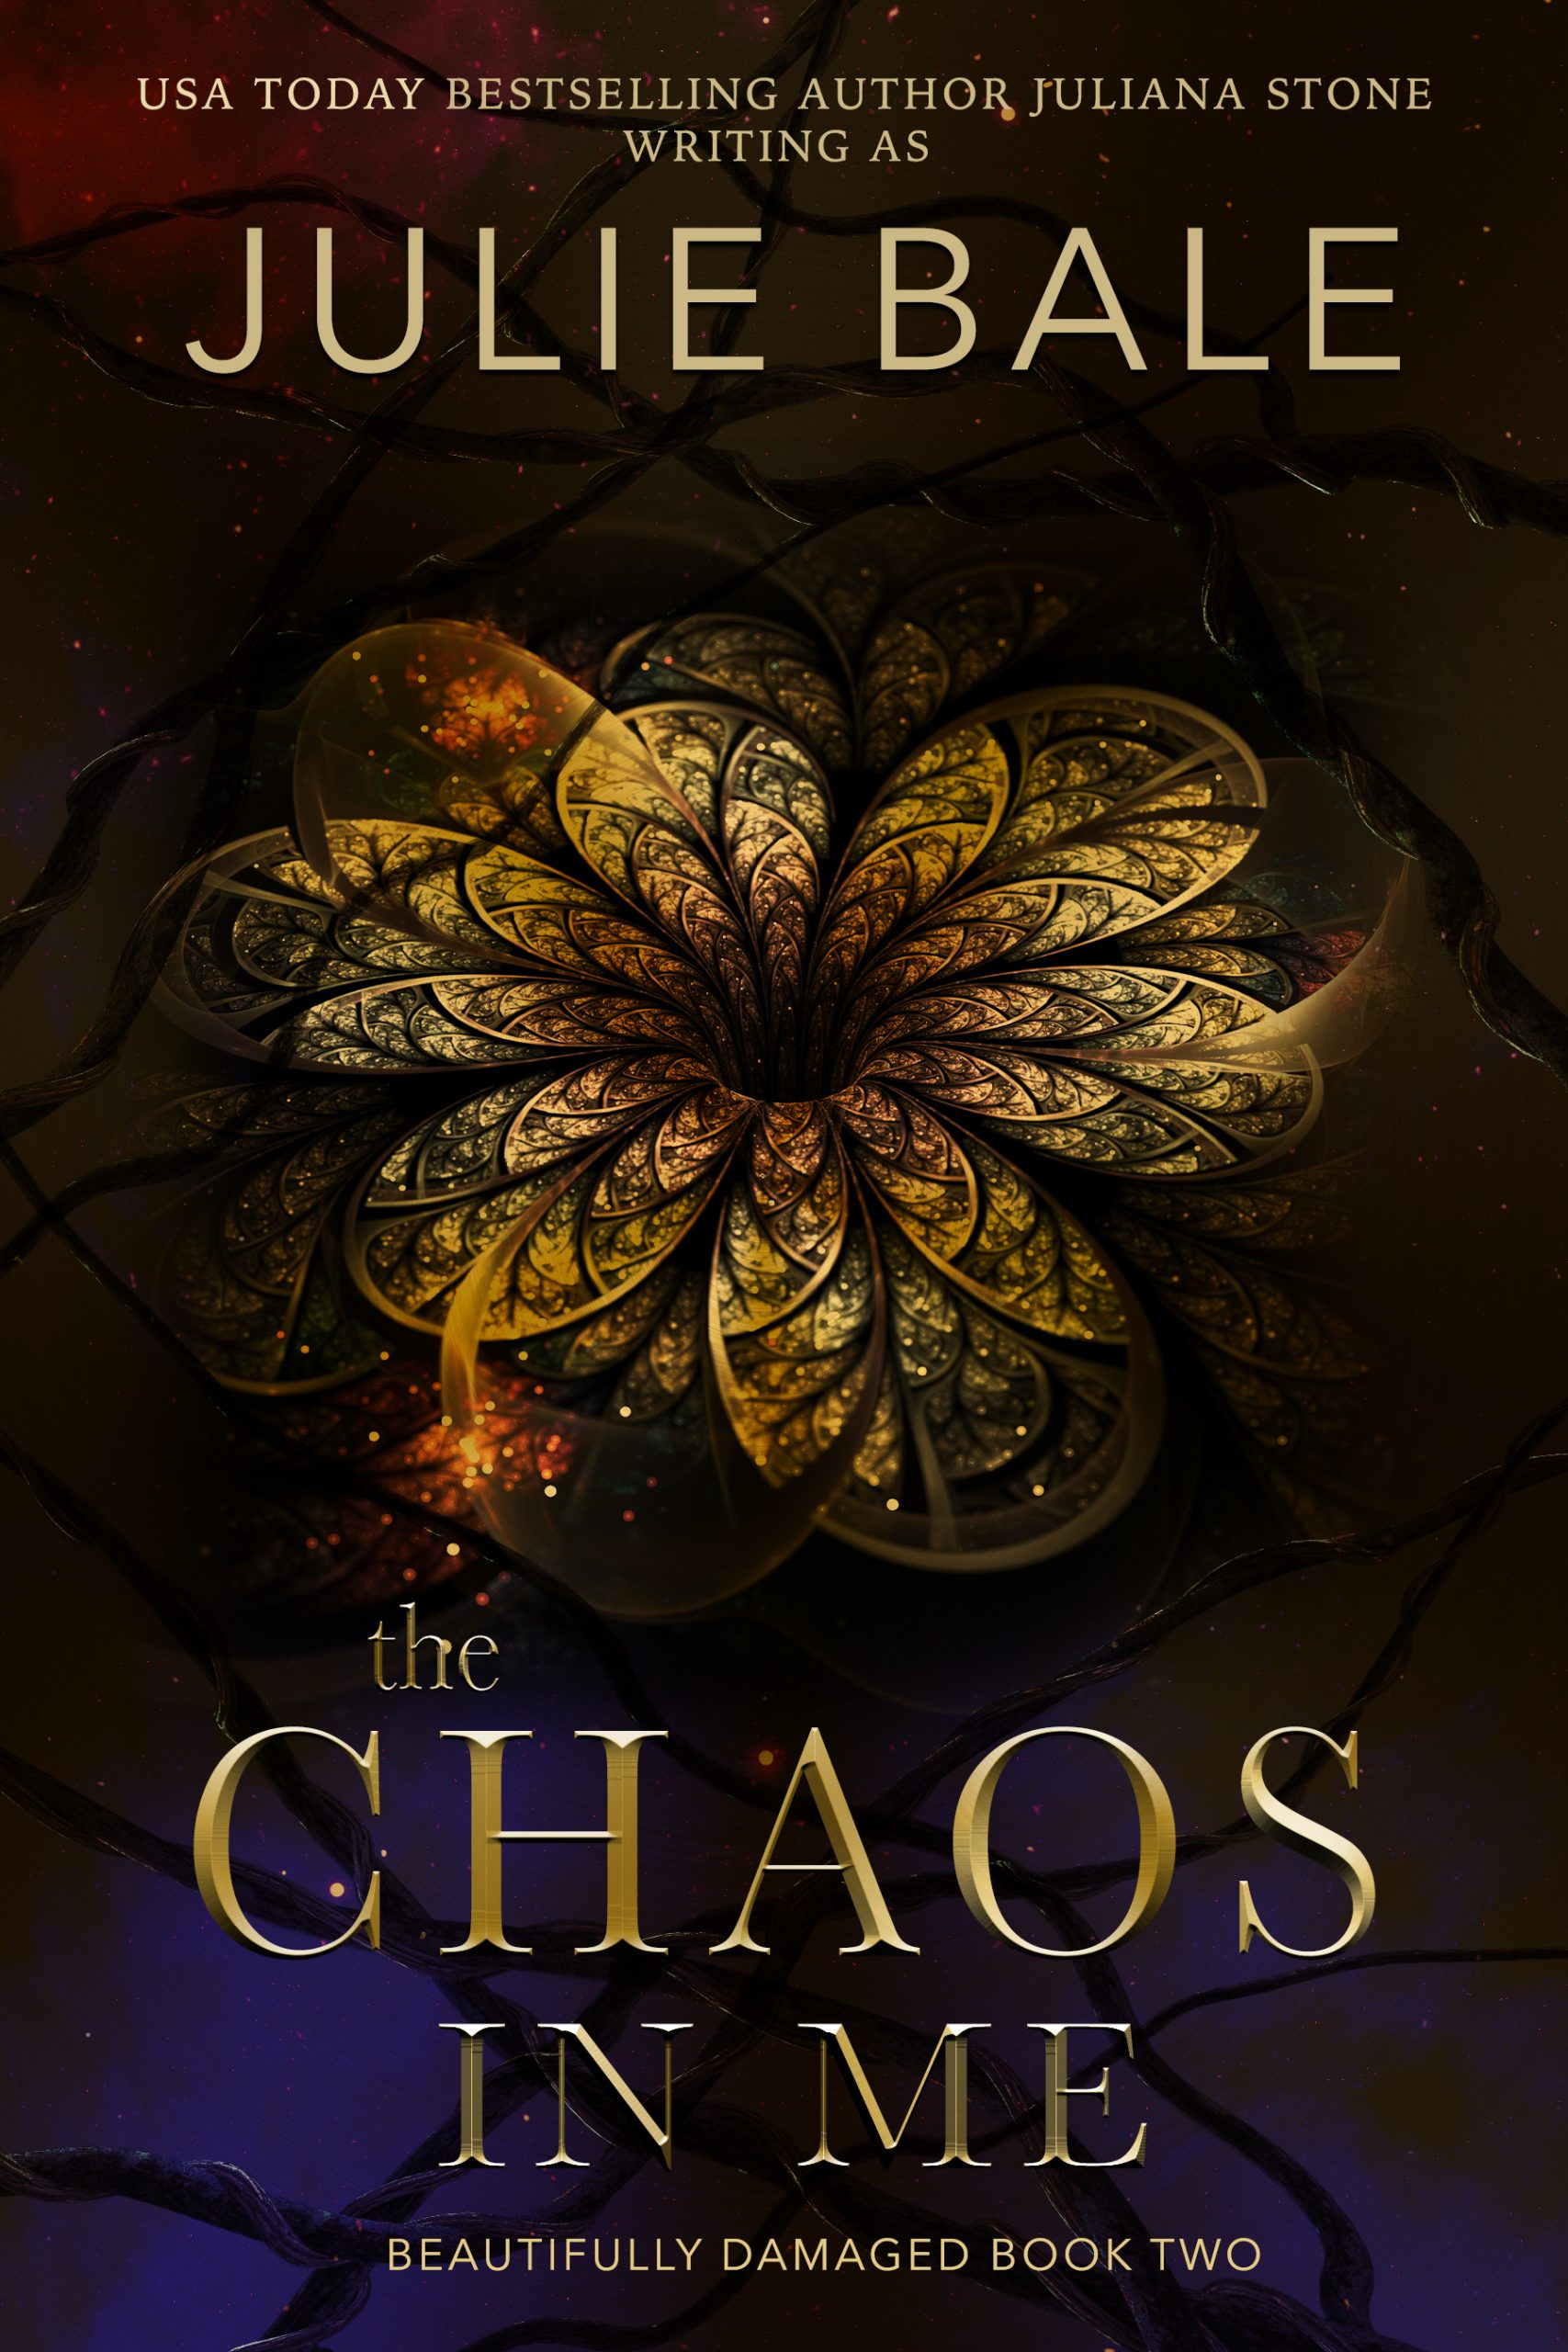 The Chaos In Me by Juliana Stone